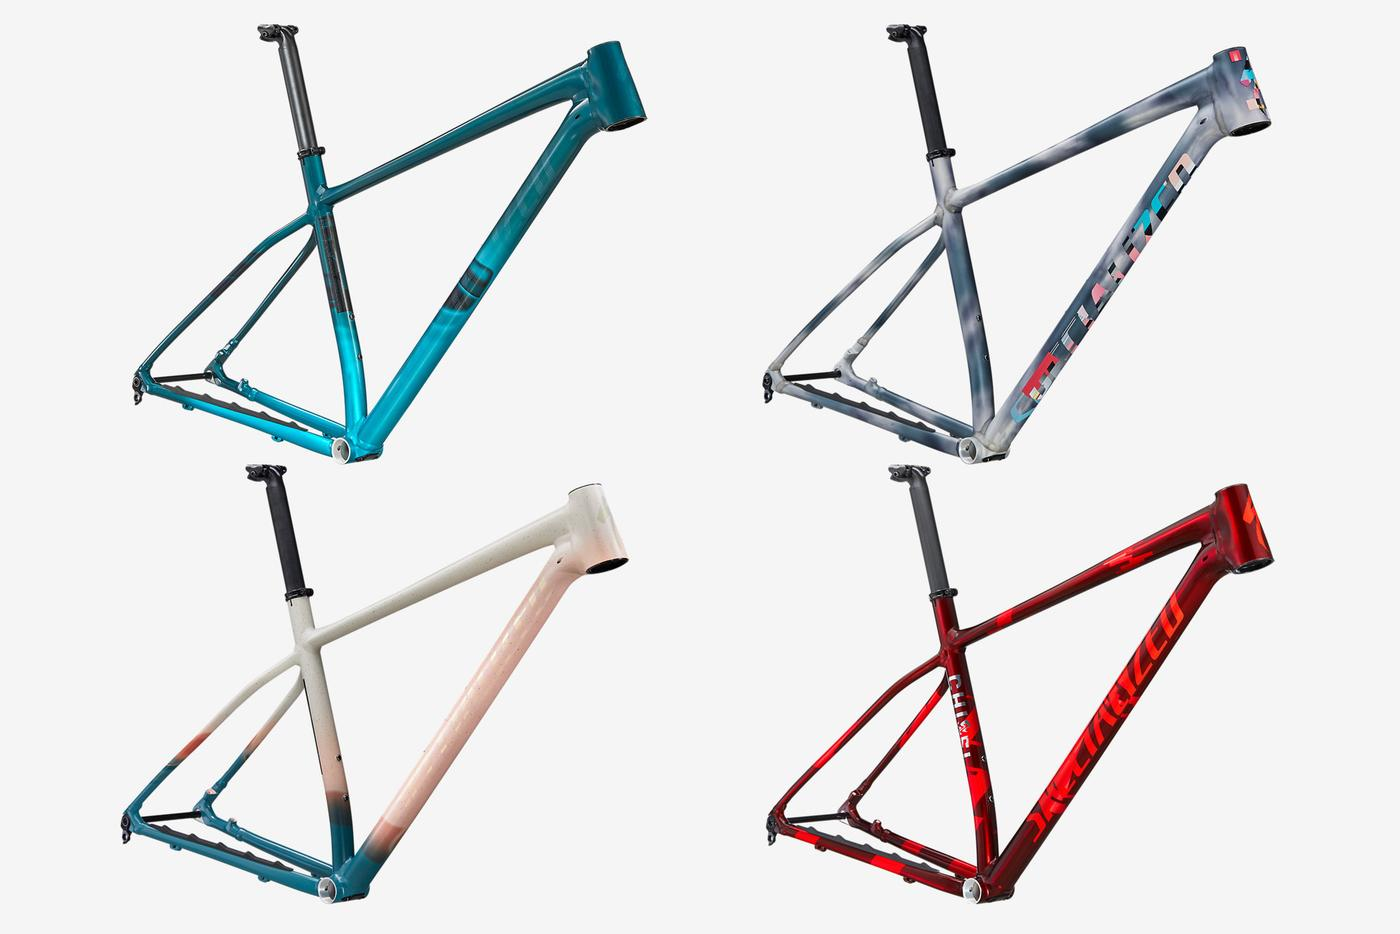 Specialized: Disrupt the Decay – Chisel LTD Frameset in Earth, Wind, Fire, and Water